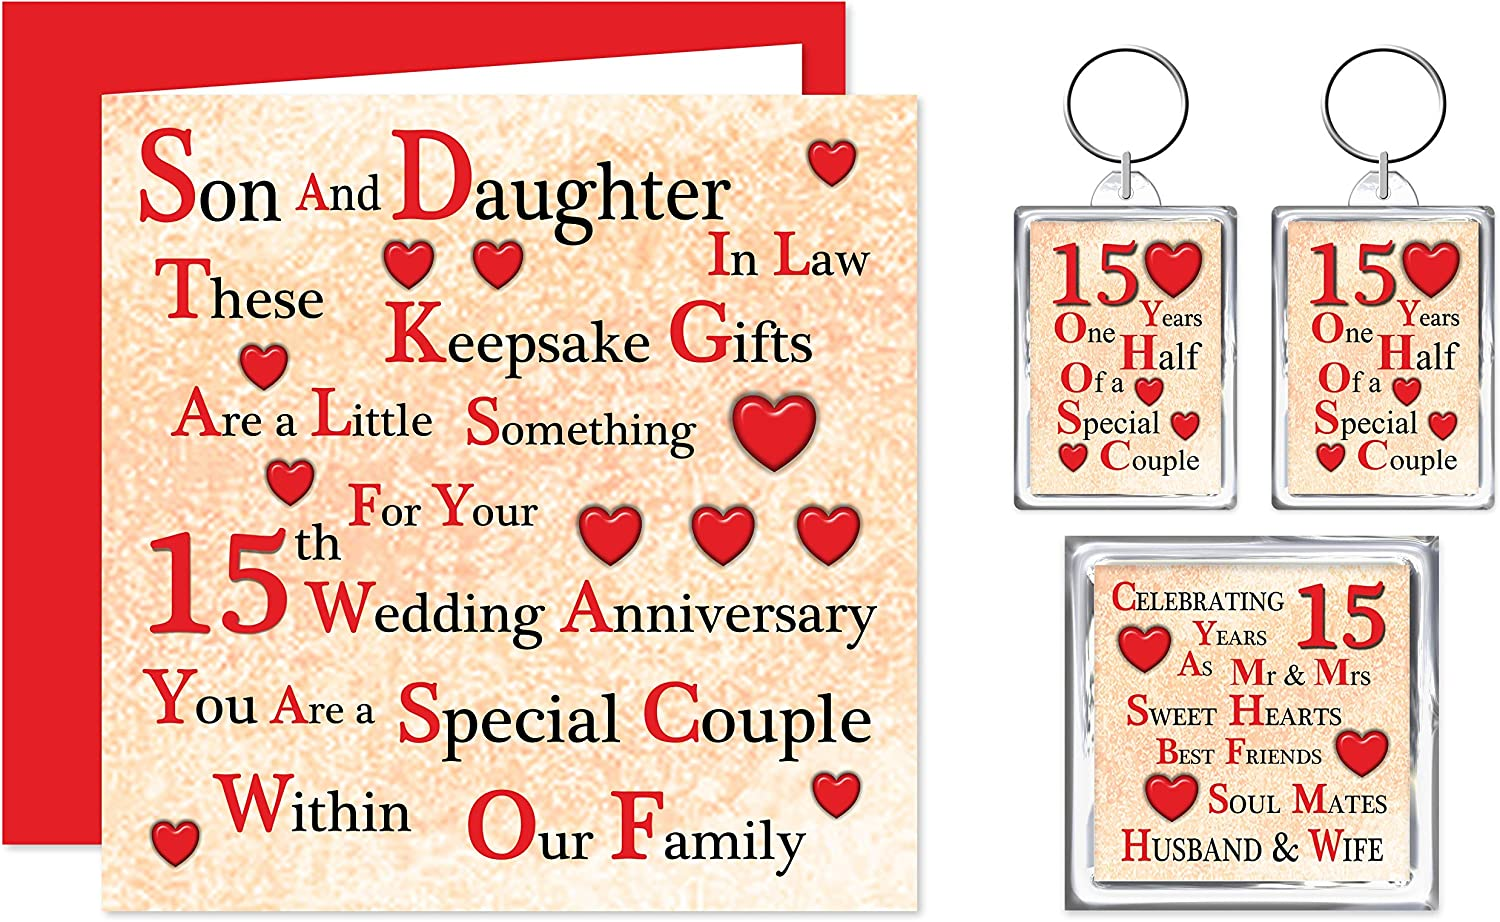 Son Daughter In Law 15th Wedding Anniversary Gift Set Card 2 Keyrings Fridge Magnet A Little Something For A Special Couple On Your Crystal Anniversary 15